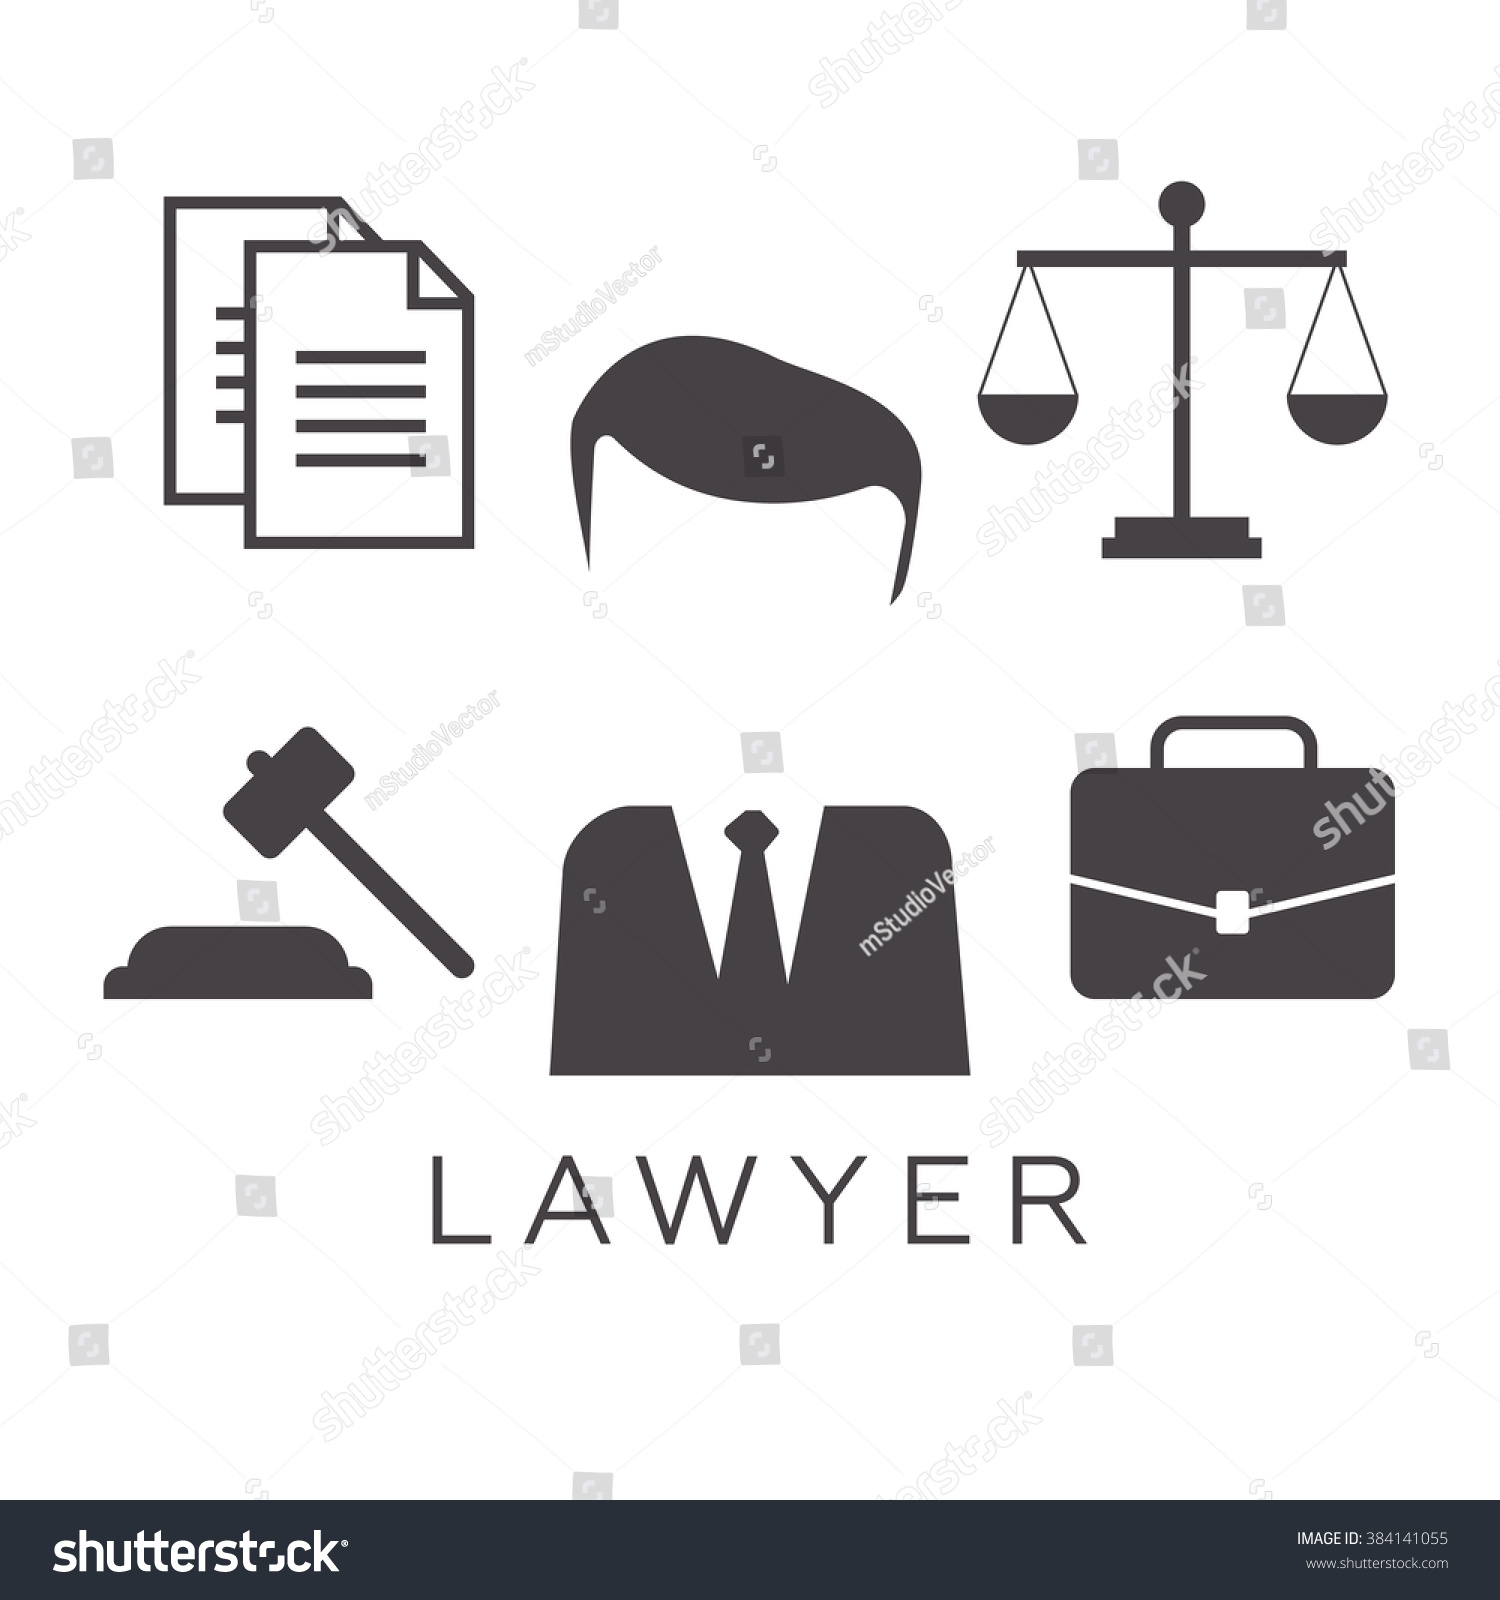 lawyer vector - photo #47